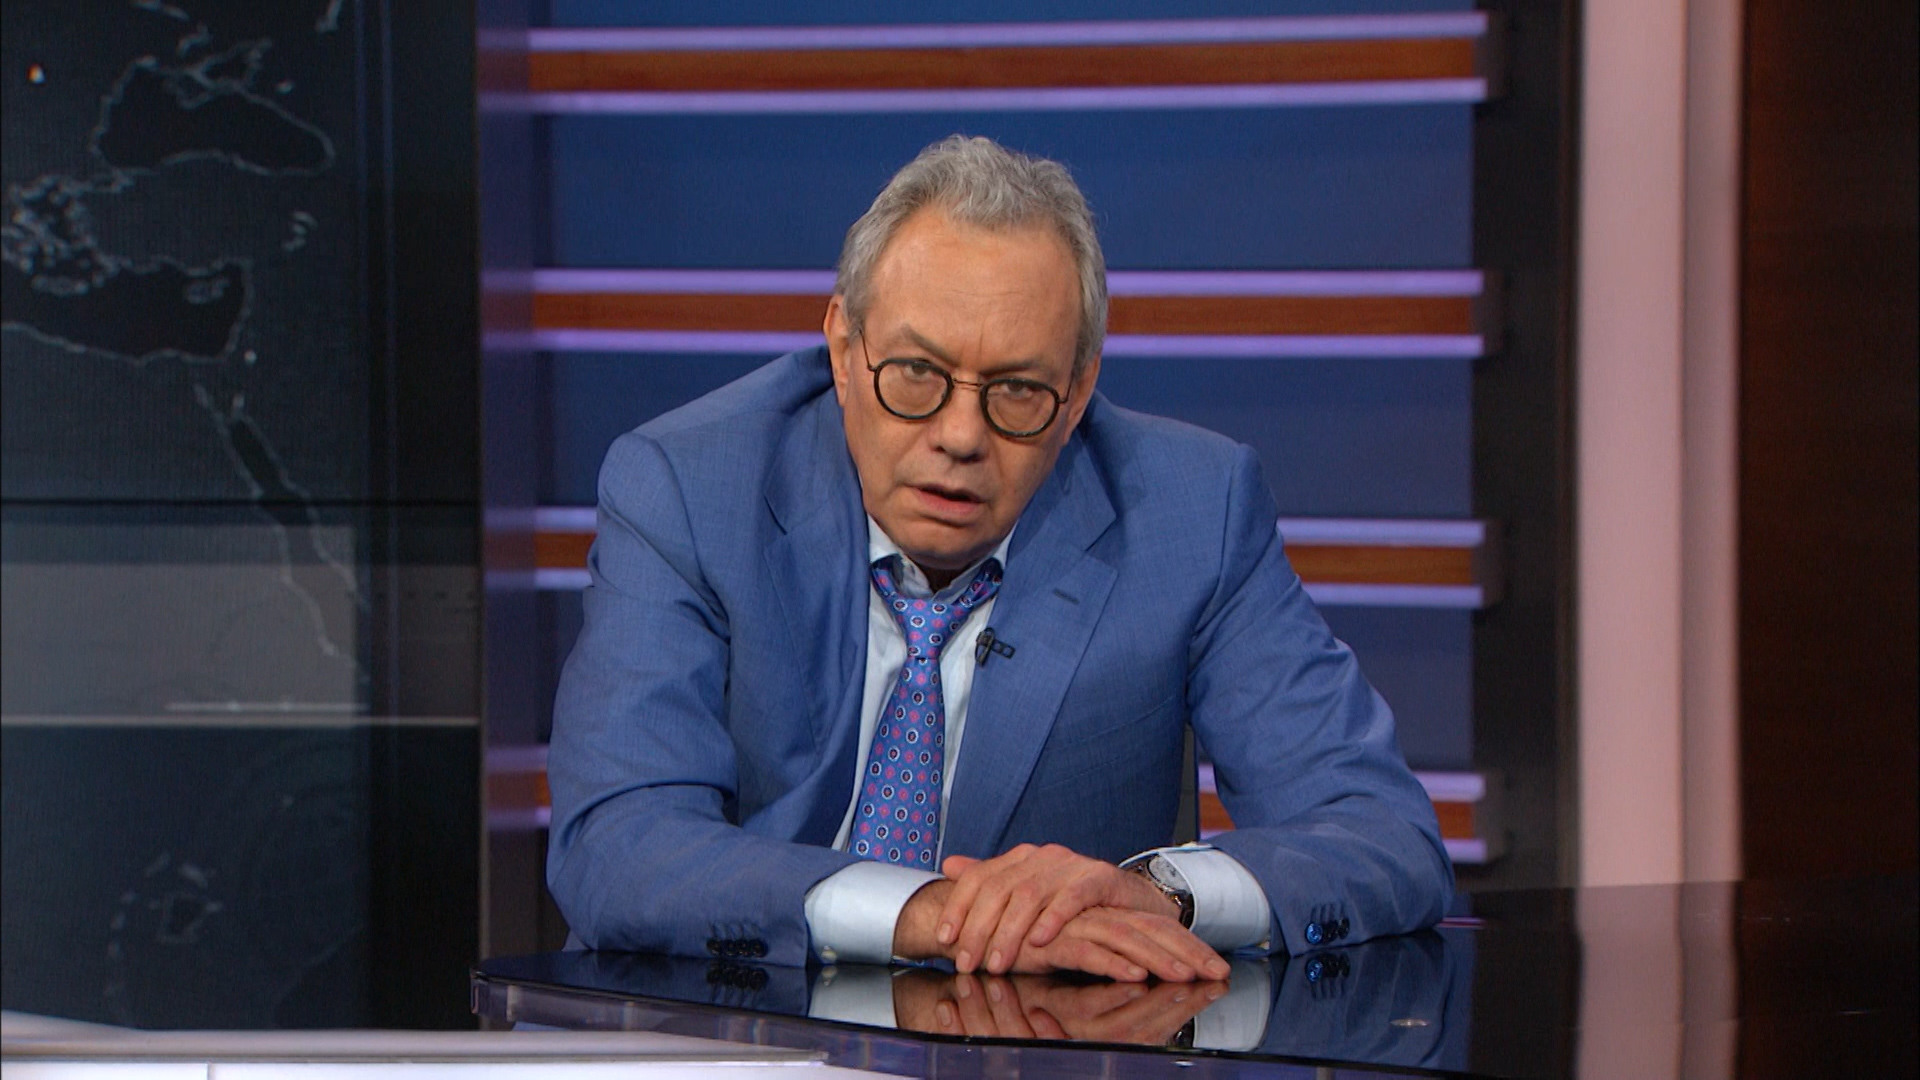 THE DAILY SHOW - BACK IN BLACK: LEWIS BLACK AUDITIONS FOR A MORNING TALK SHOW